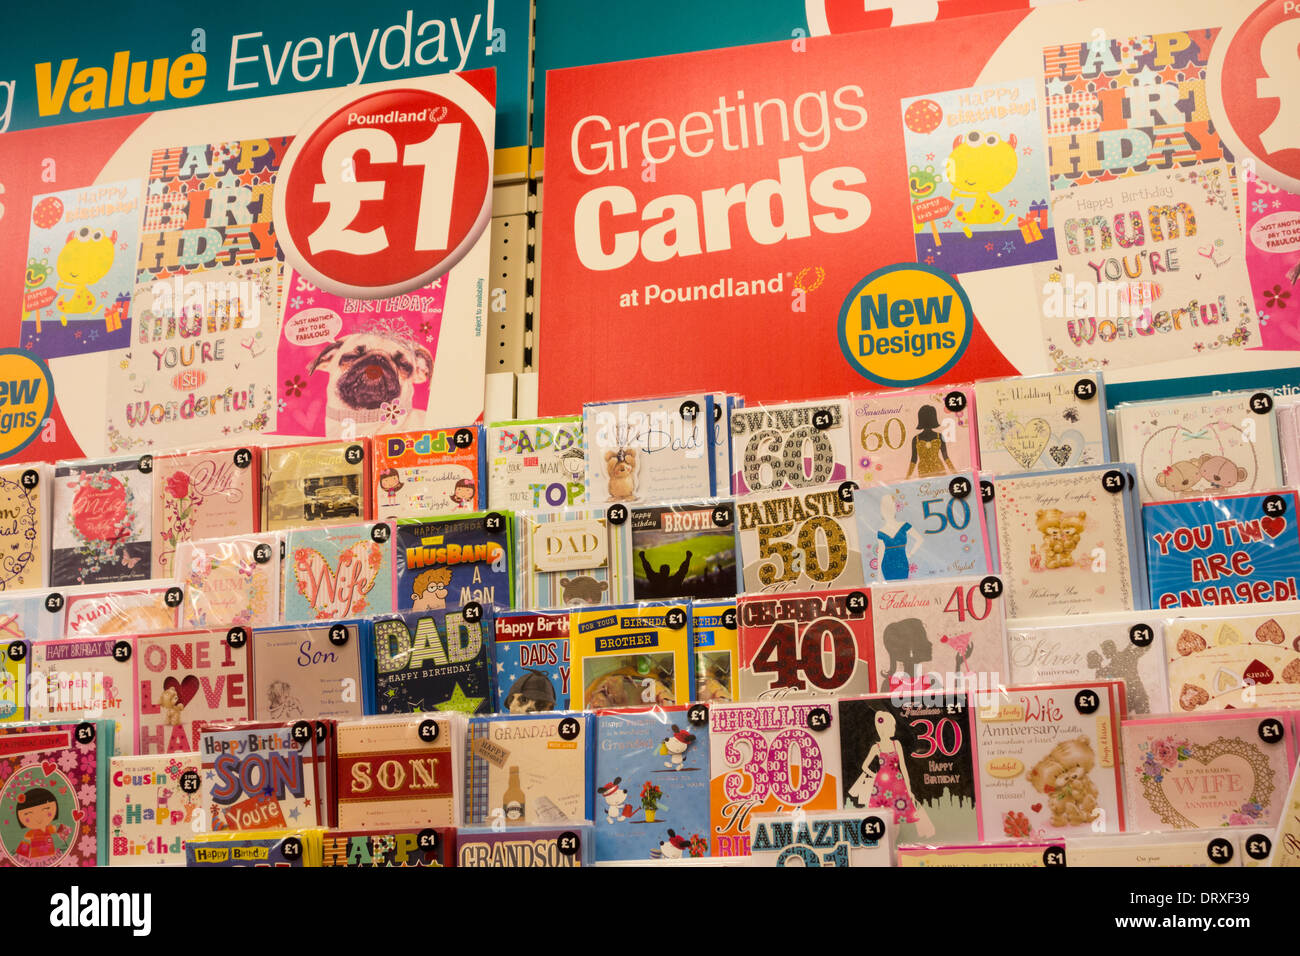 Birthday Cards In Poundland Store UK